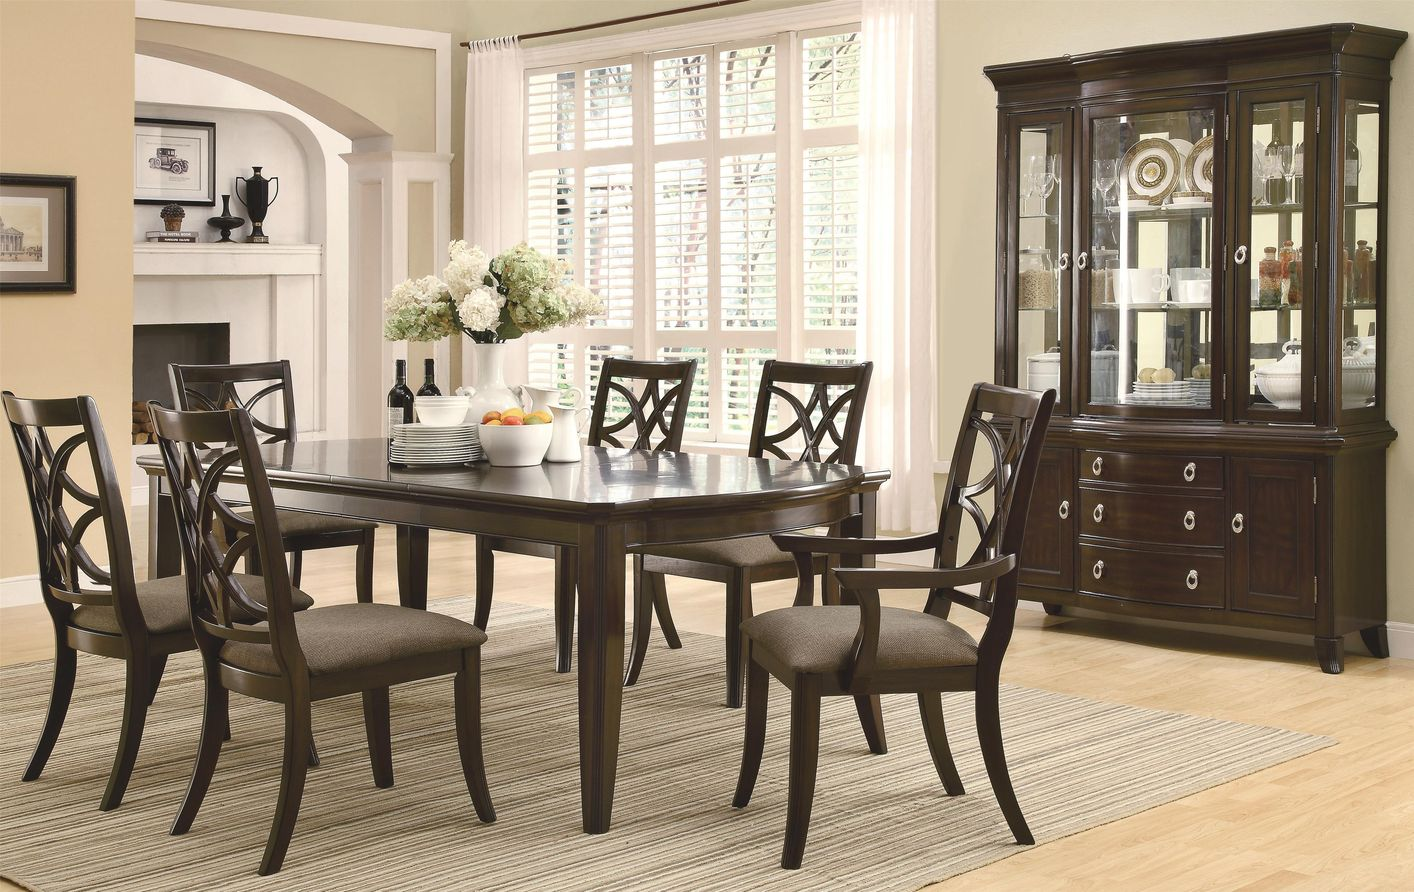 Meredith Espresso Wood Dining Table Set : espresso table set - pezcame.com